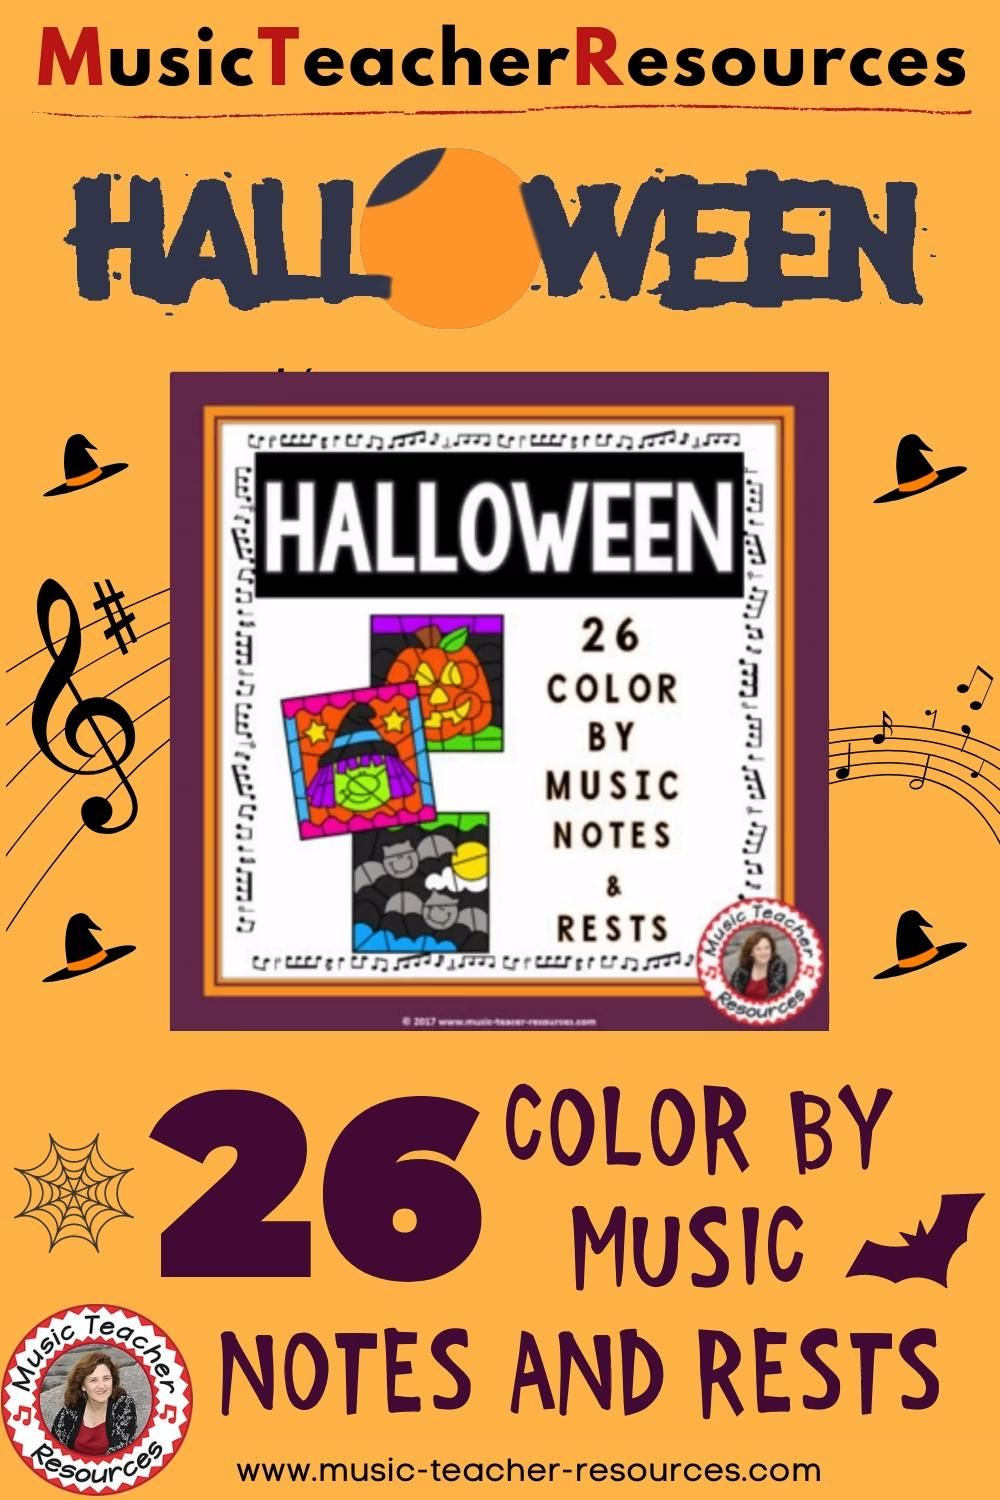 Color By Music Sheets Are A Fun Way To Practice And Review Music Concepts Enabling Students To Memorize And Recall Quickly An Video